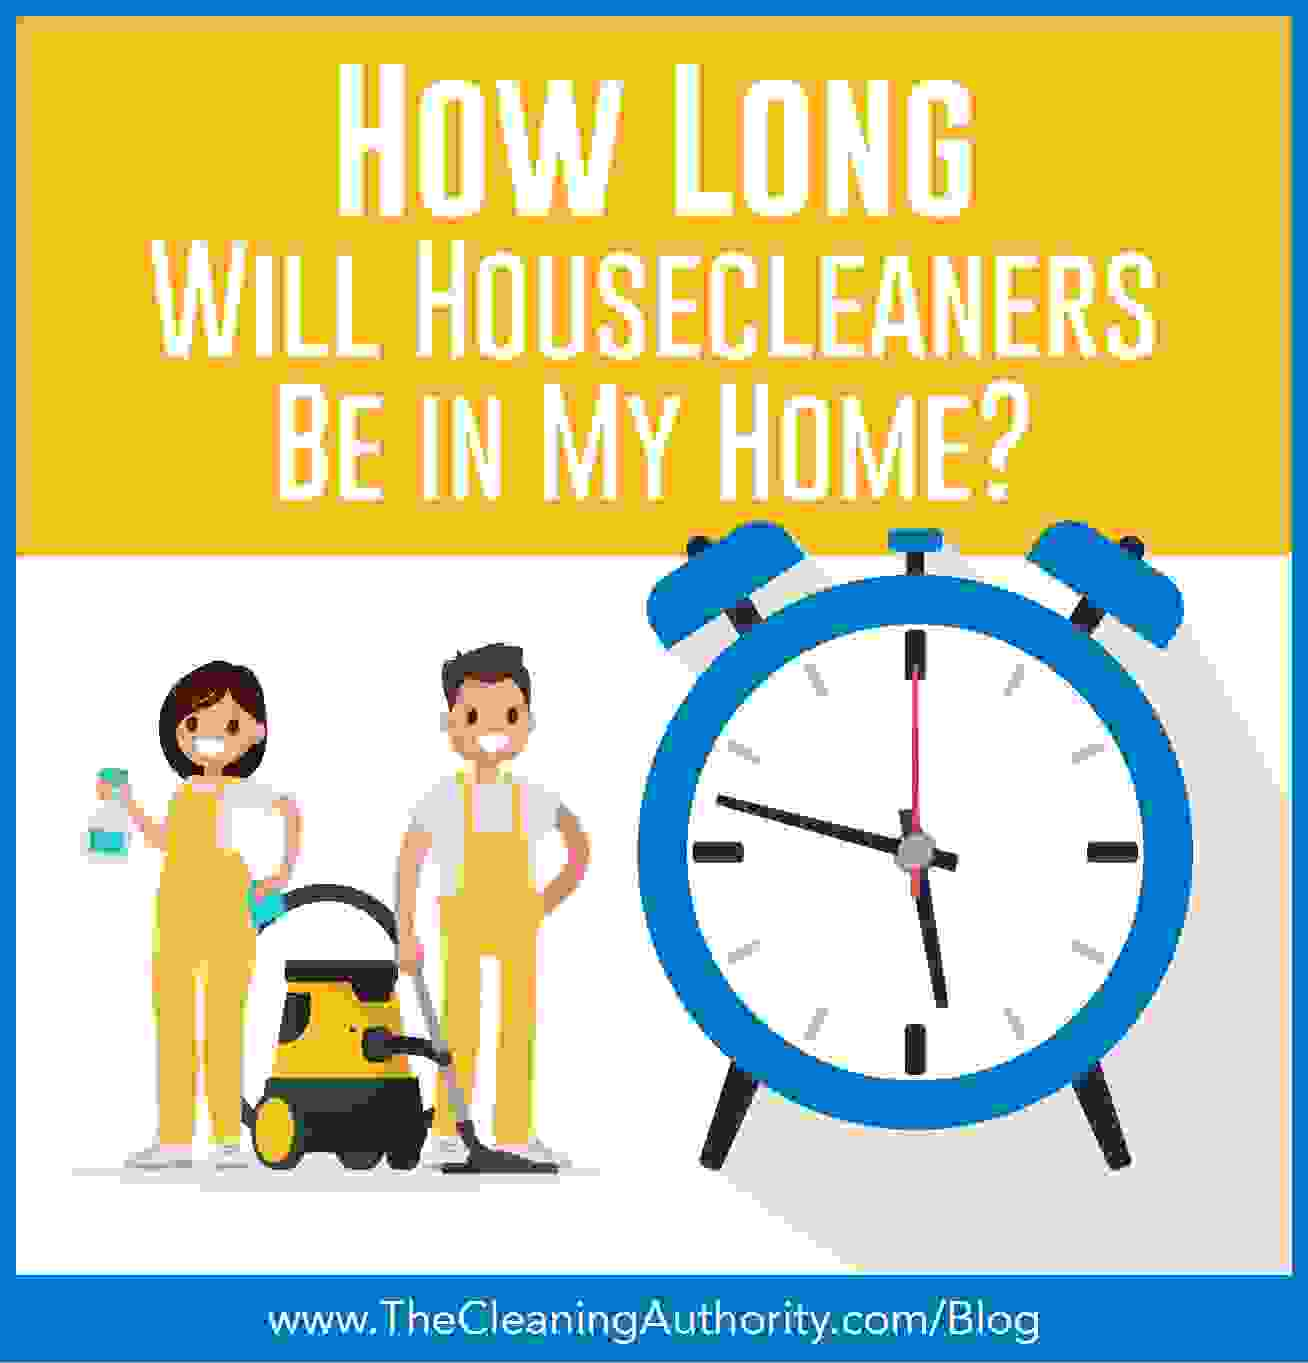 How long will house cleaners be in the house?